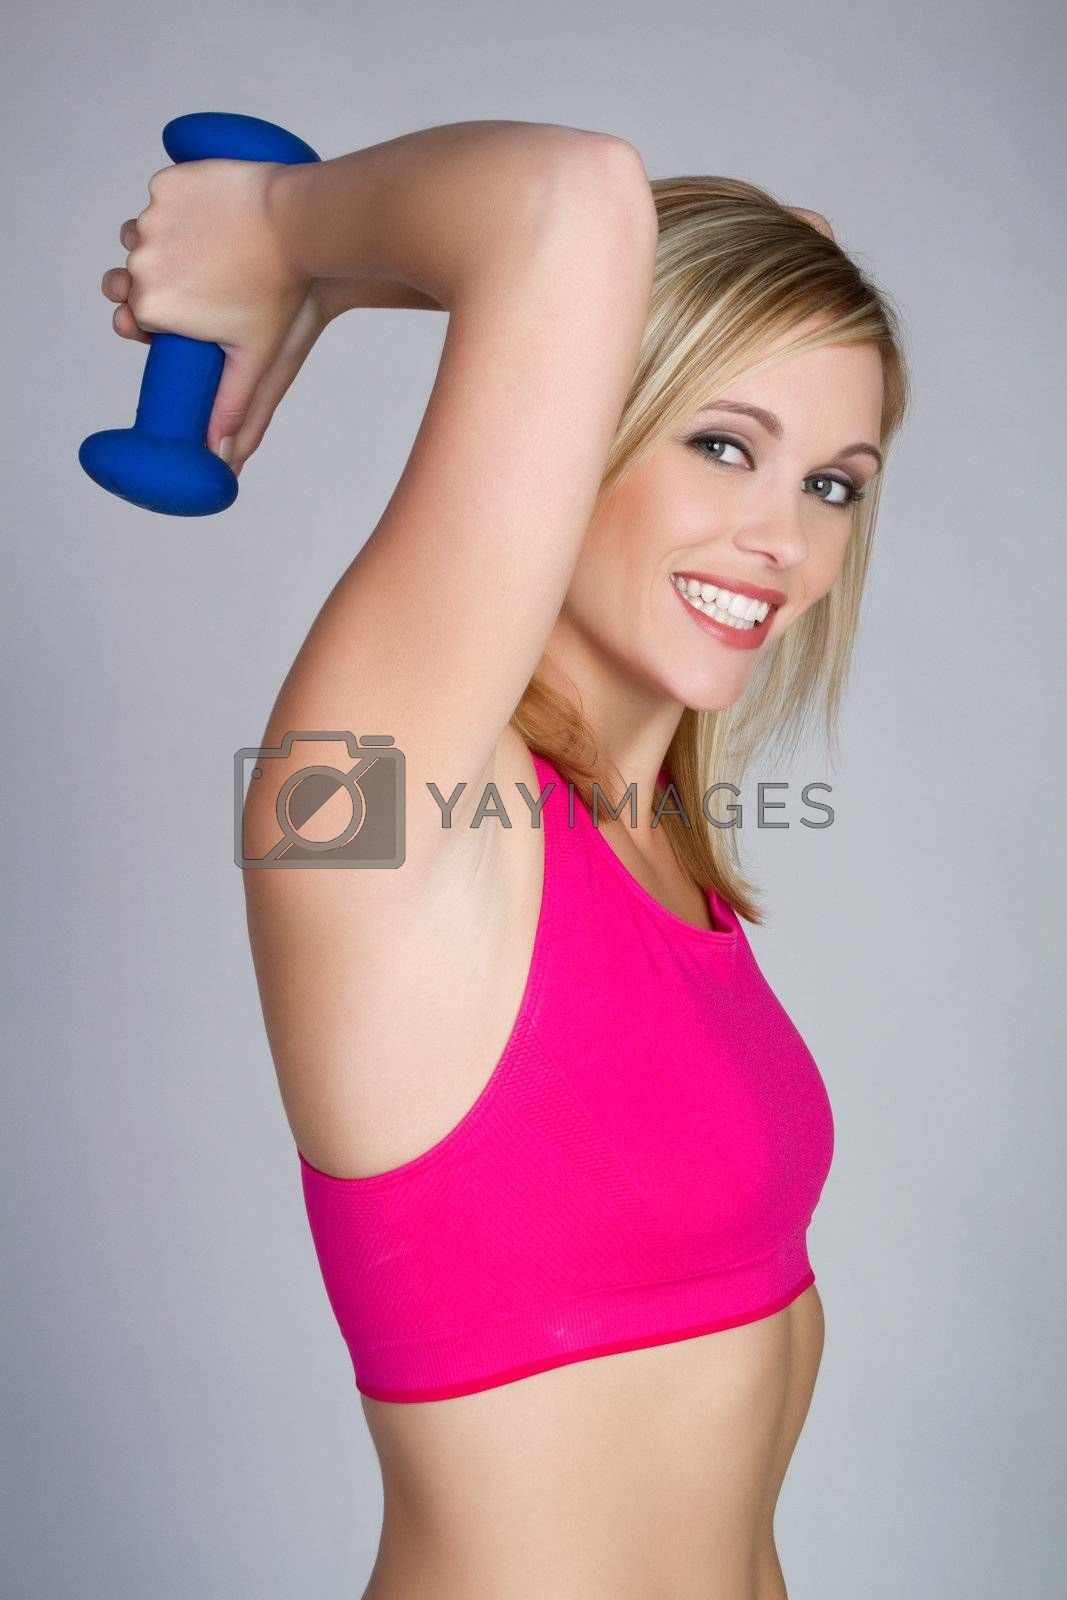 Exercising fitness weight lifting woman